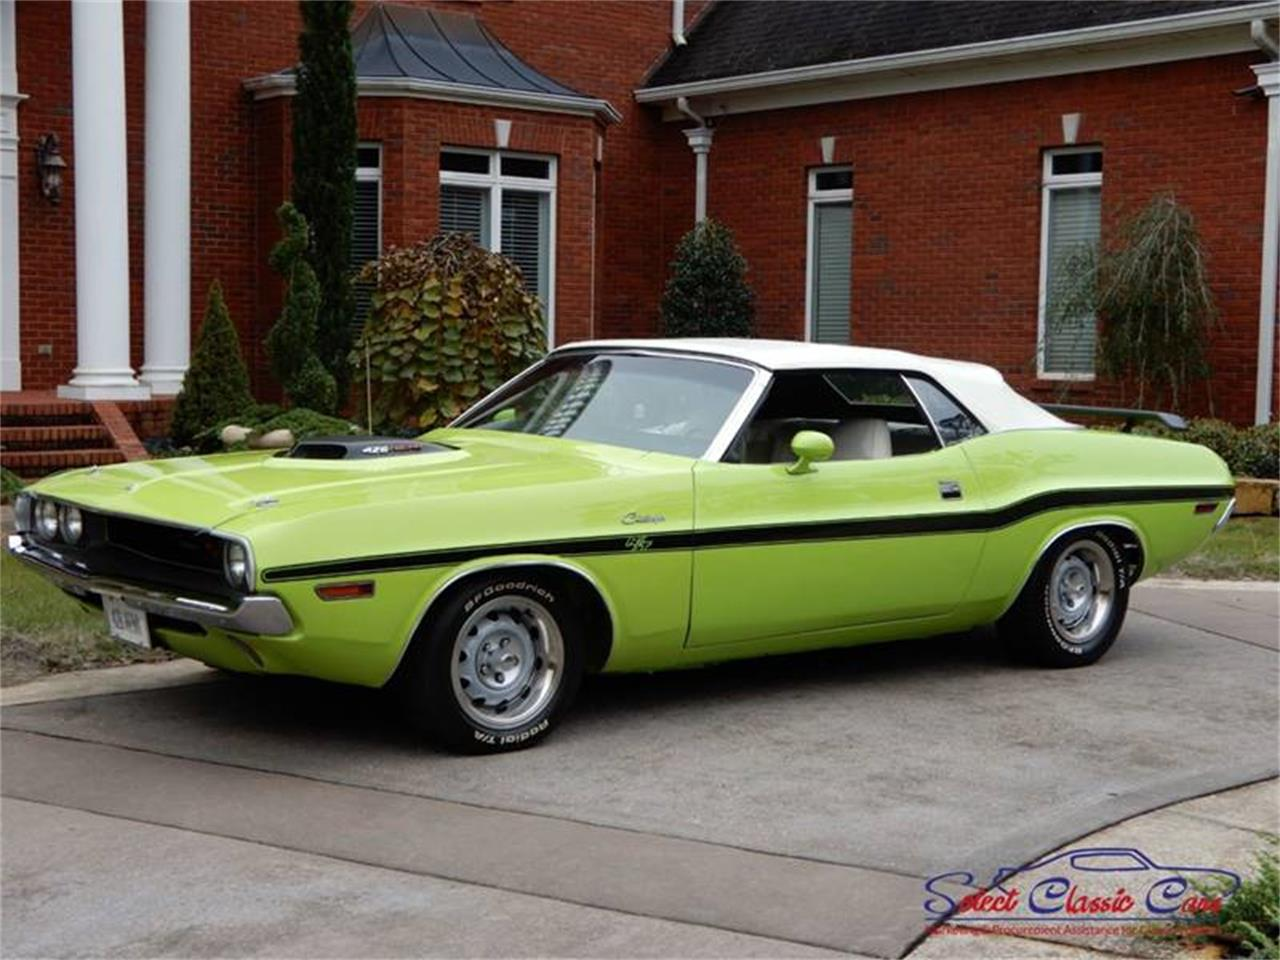 Large Picture of Classic '70 Dodge Challenger located in Hiram Georgia - $125,000.00 - OW5E